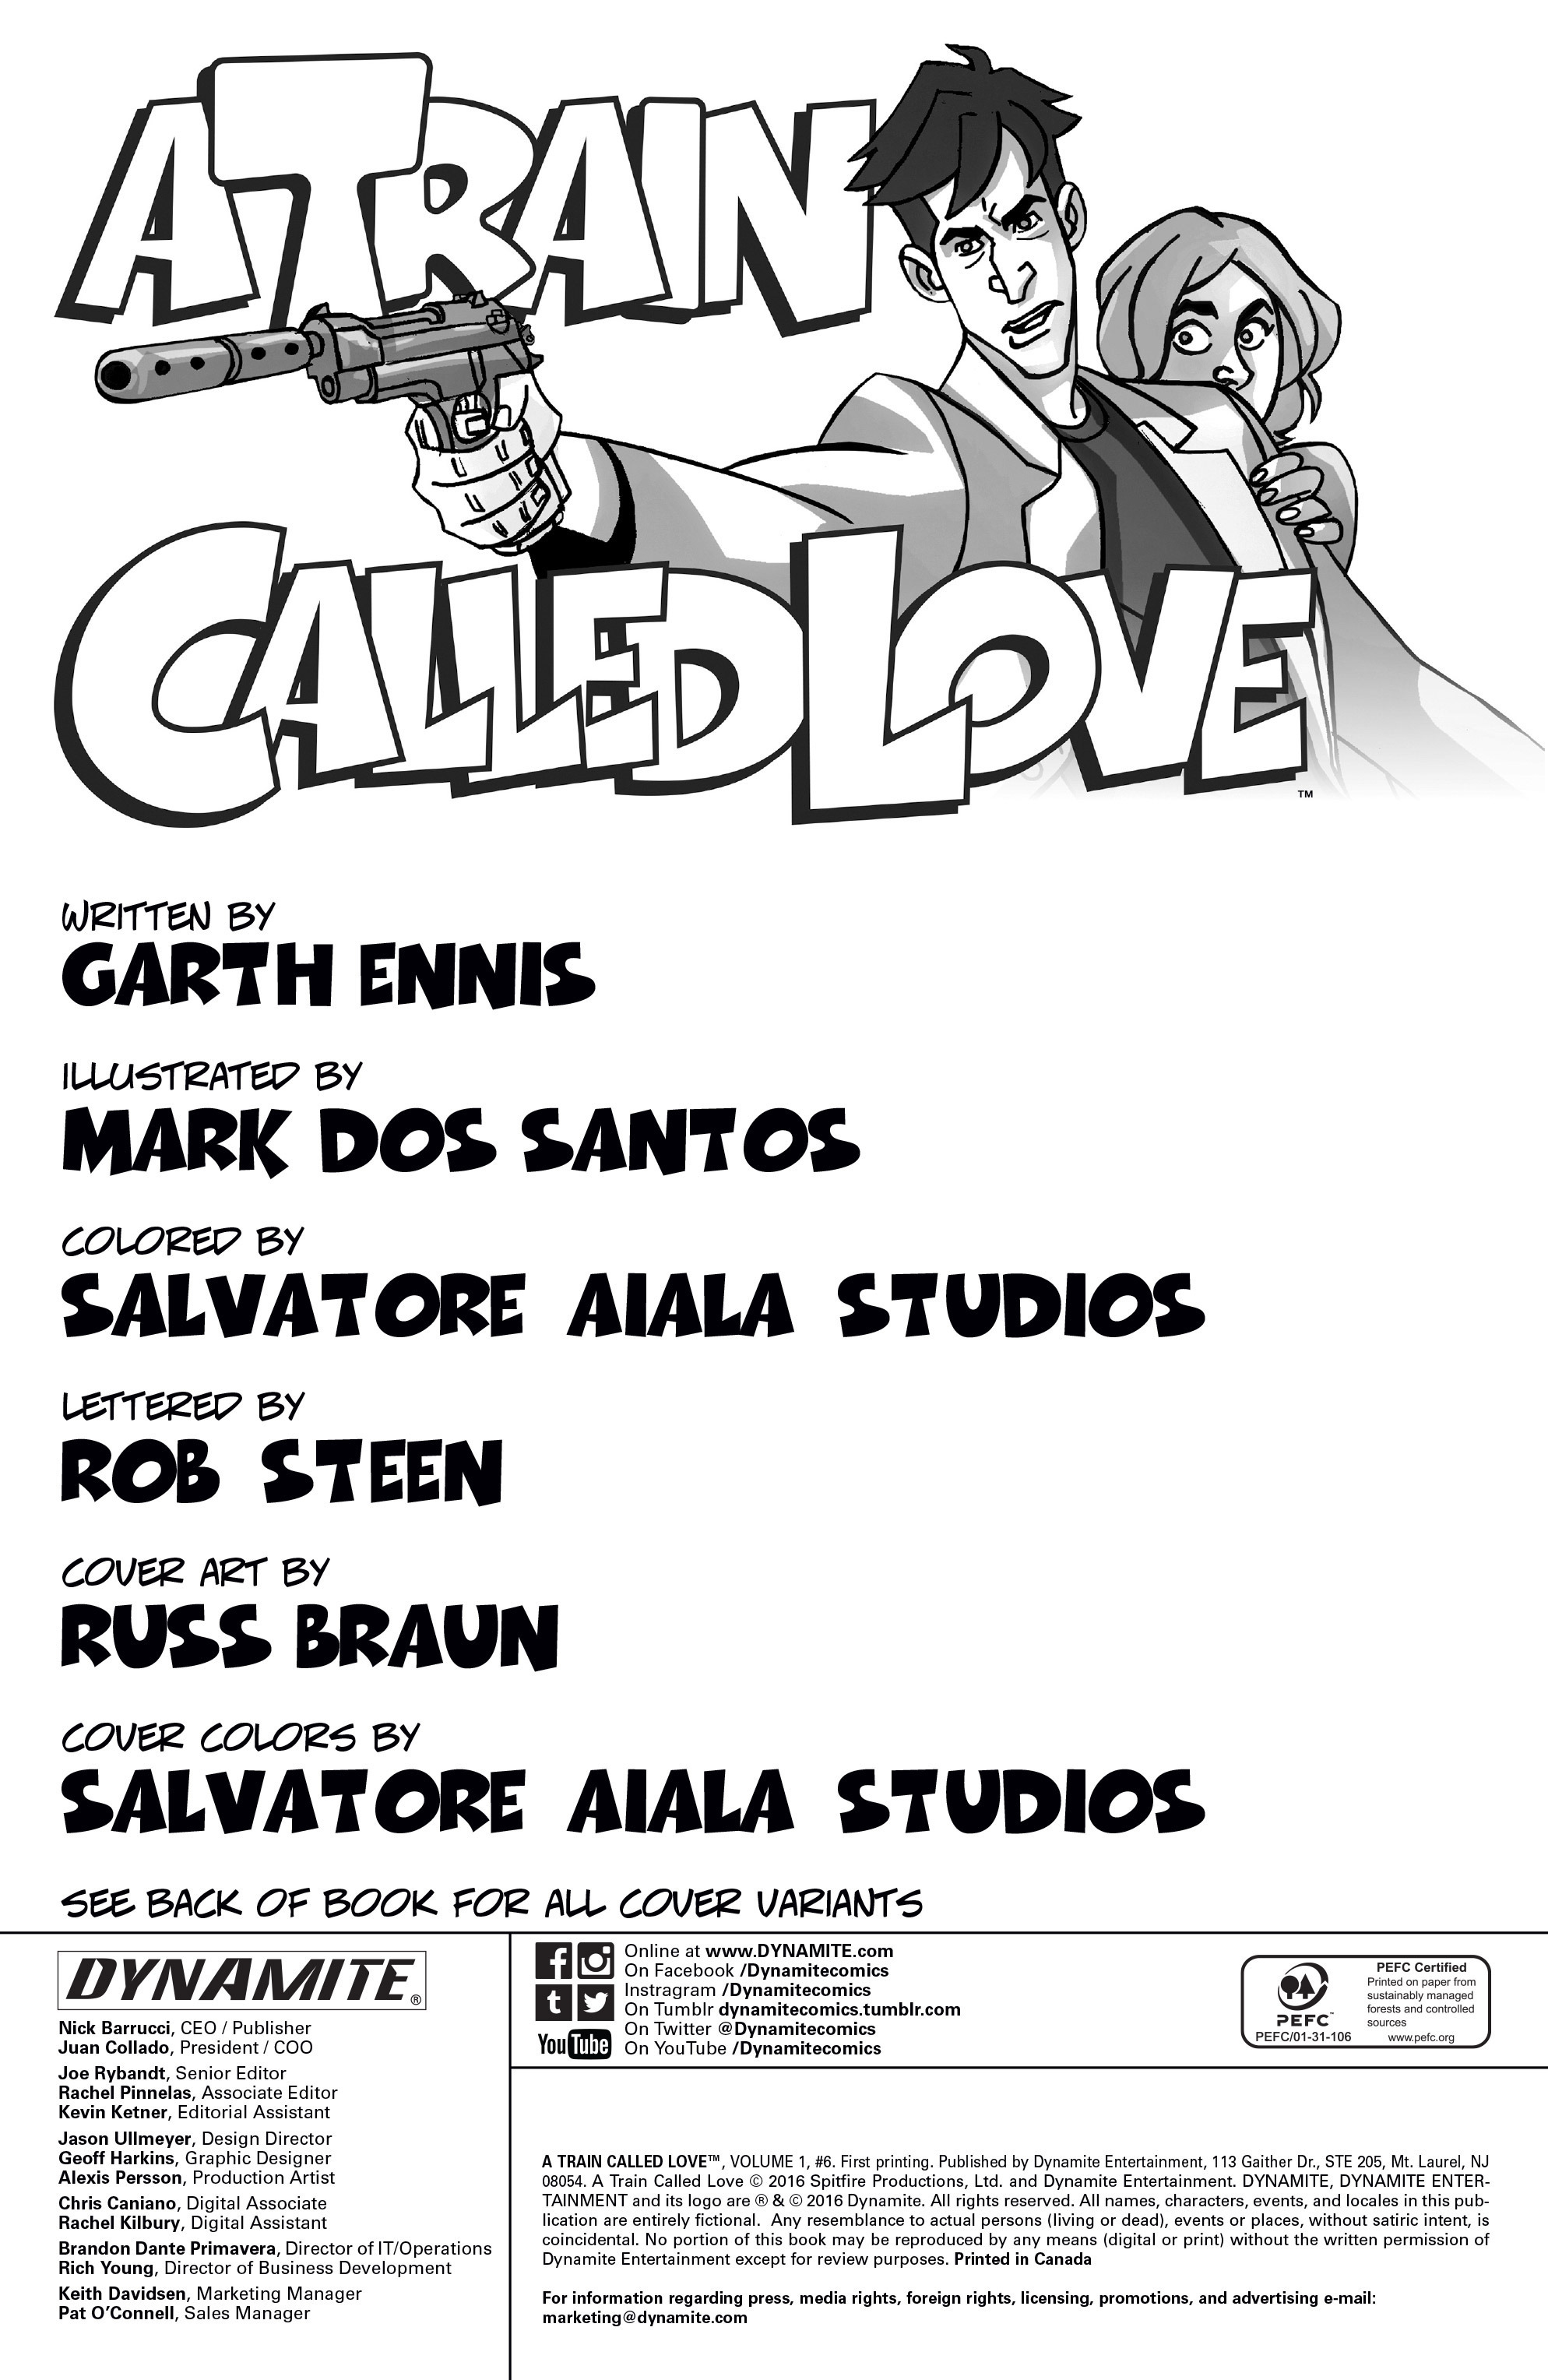 Read online A Train Called Love comic -  Issue #6 - 2